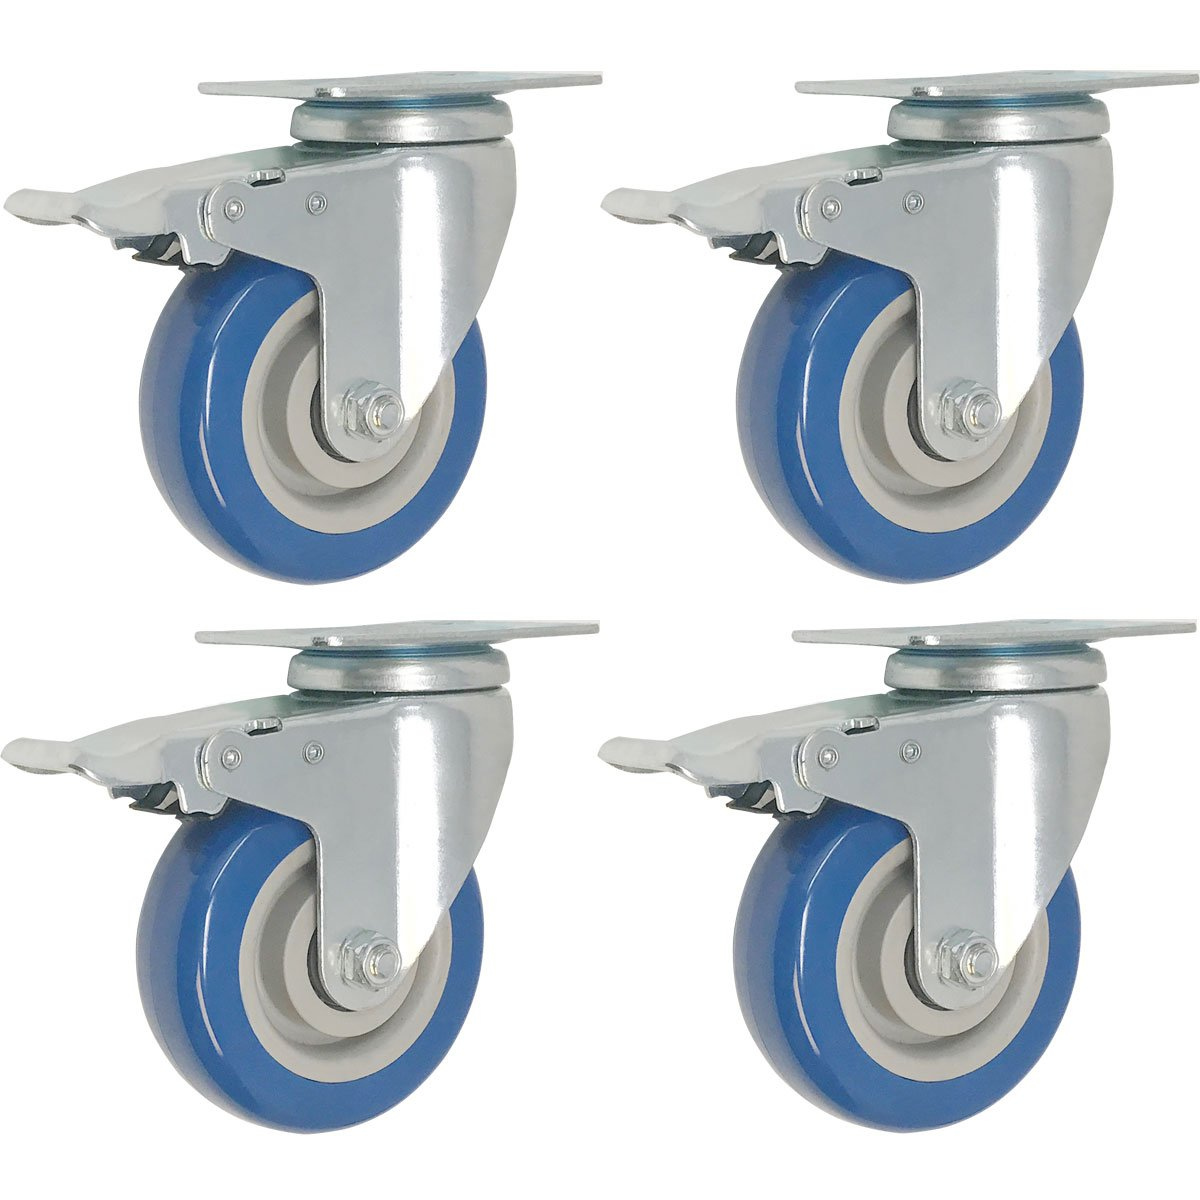 4 Pack Caster Wheels Swivel Plate w Brake Casters On Blue Polyurethane Wheels 5 inch with Brake